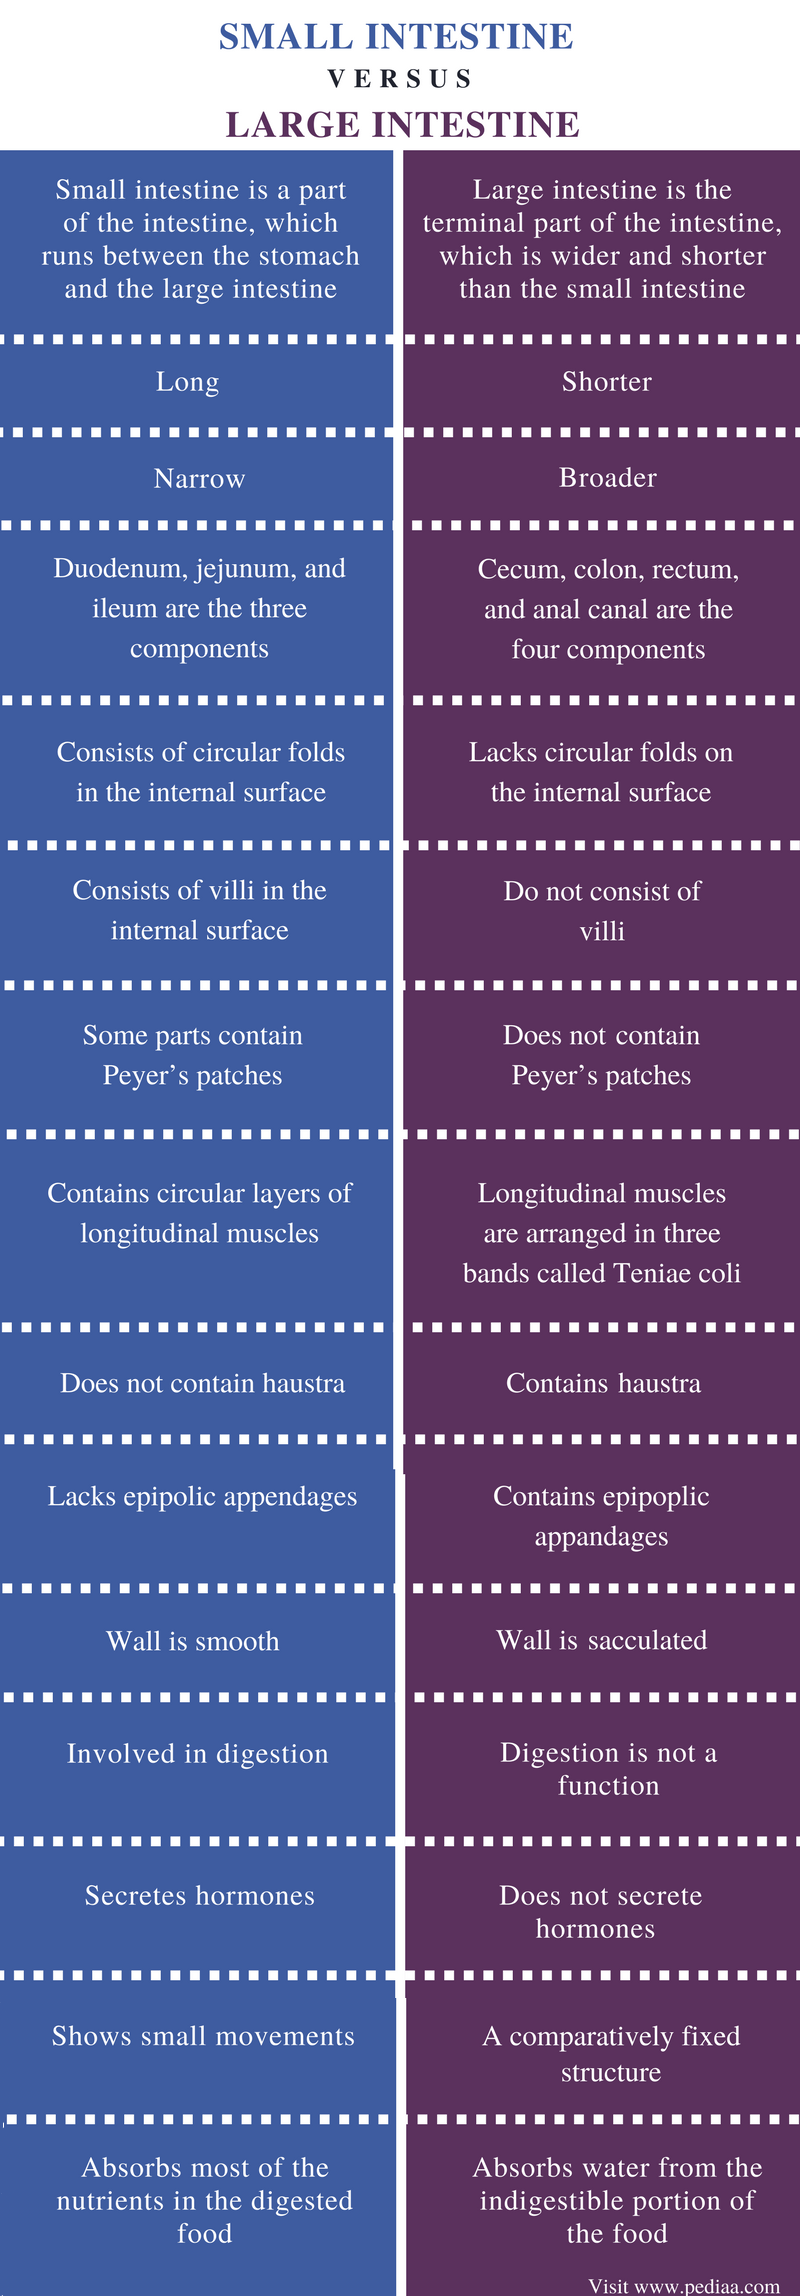 Difference Between Small and Large Intestine - Comparison Summary